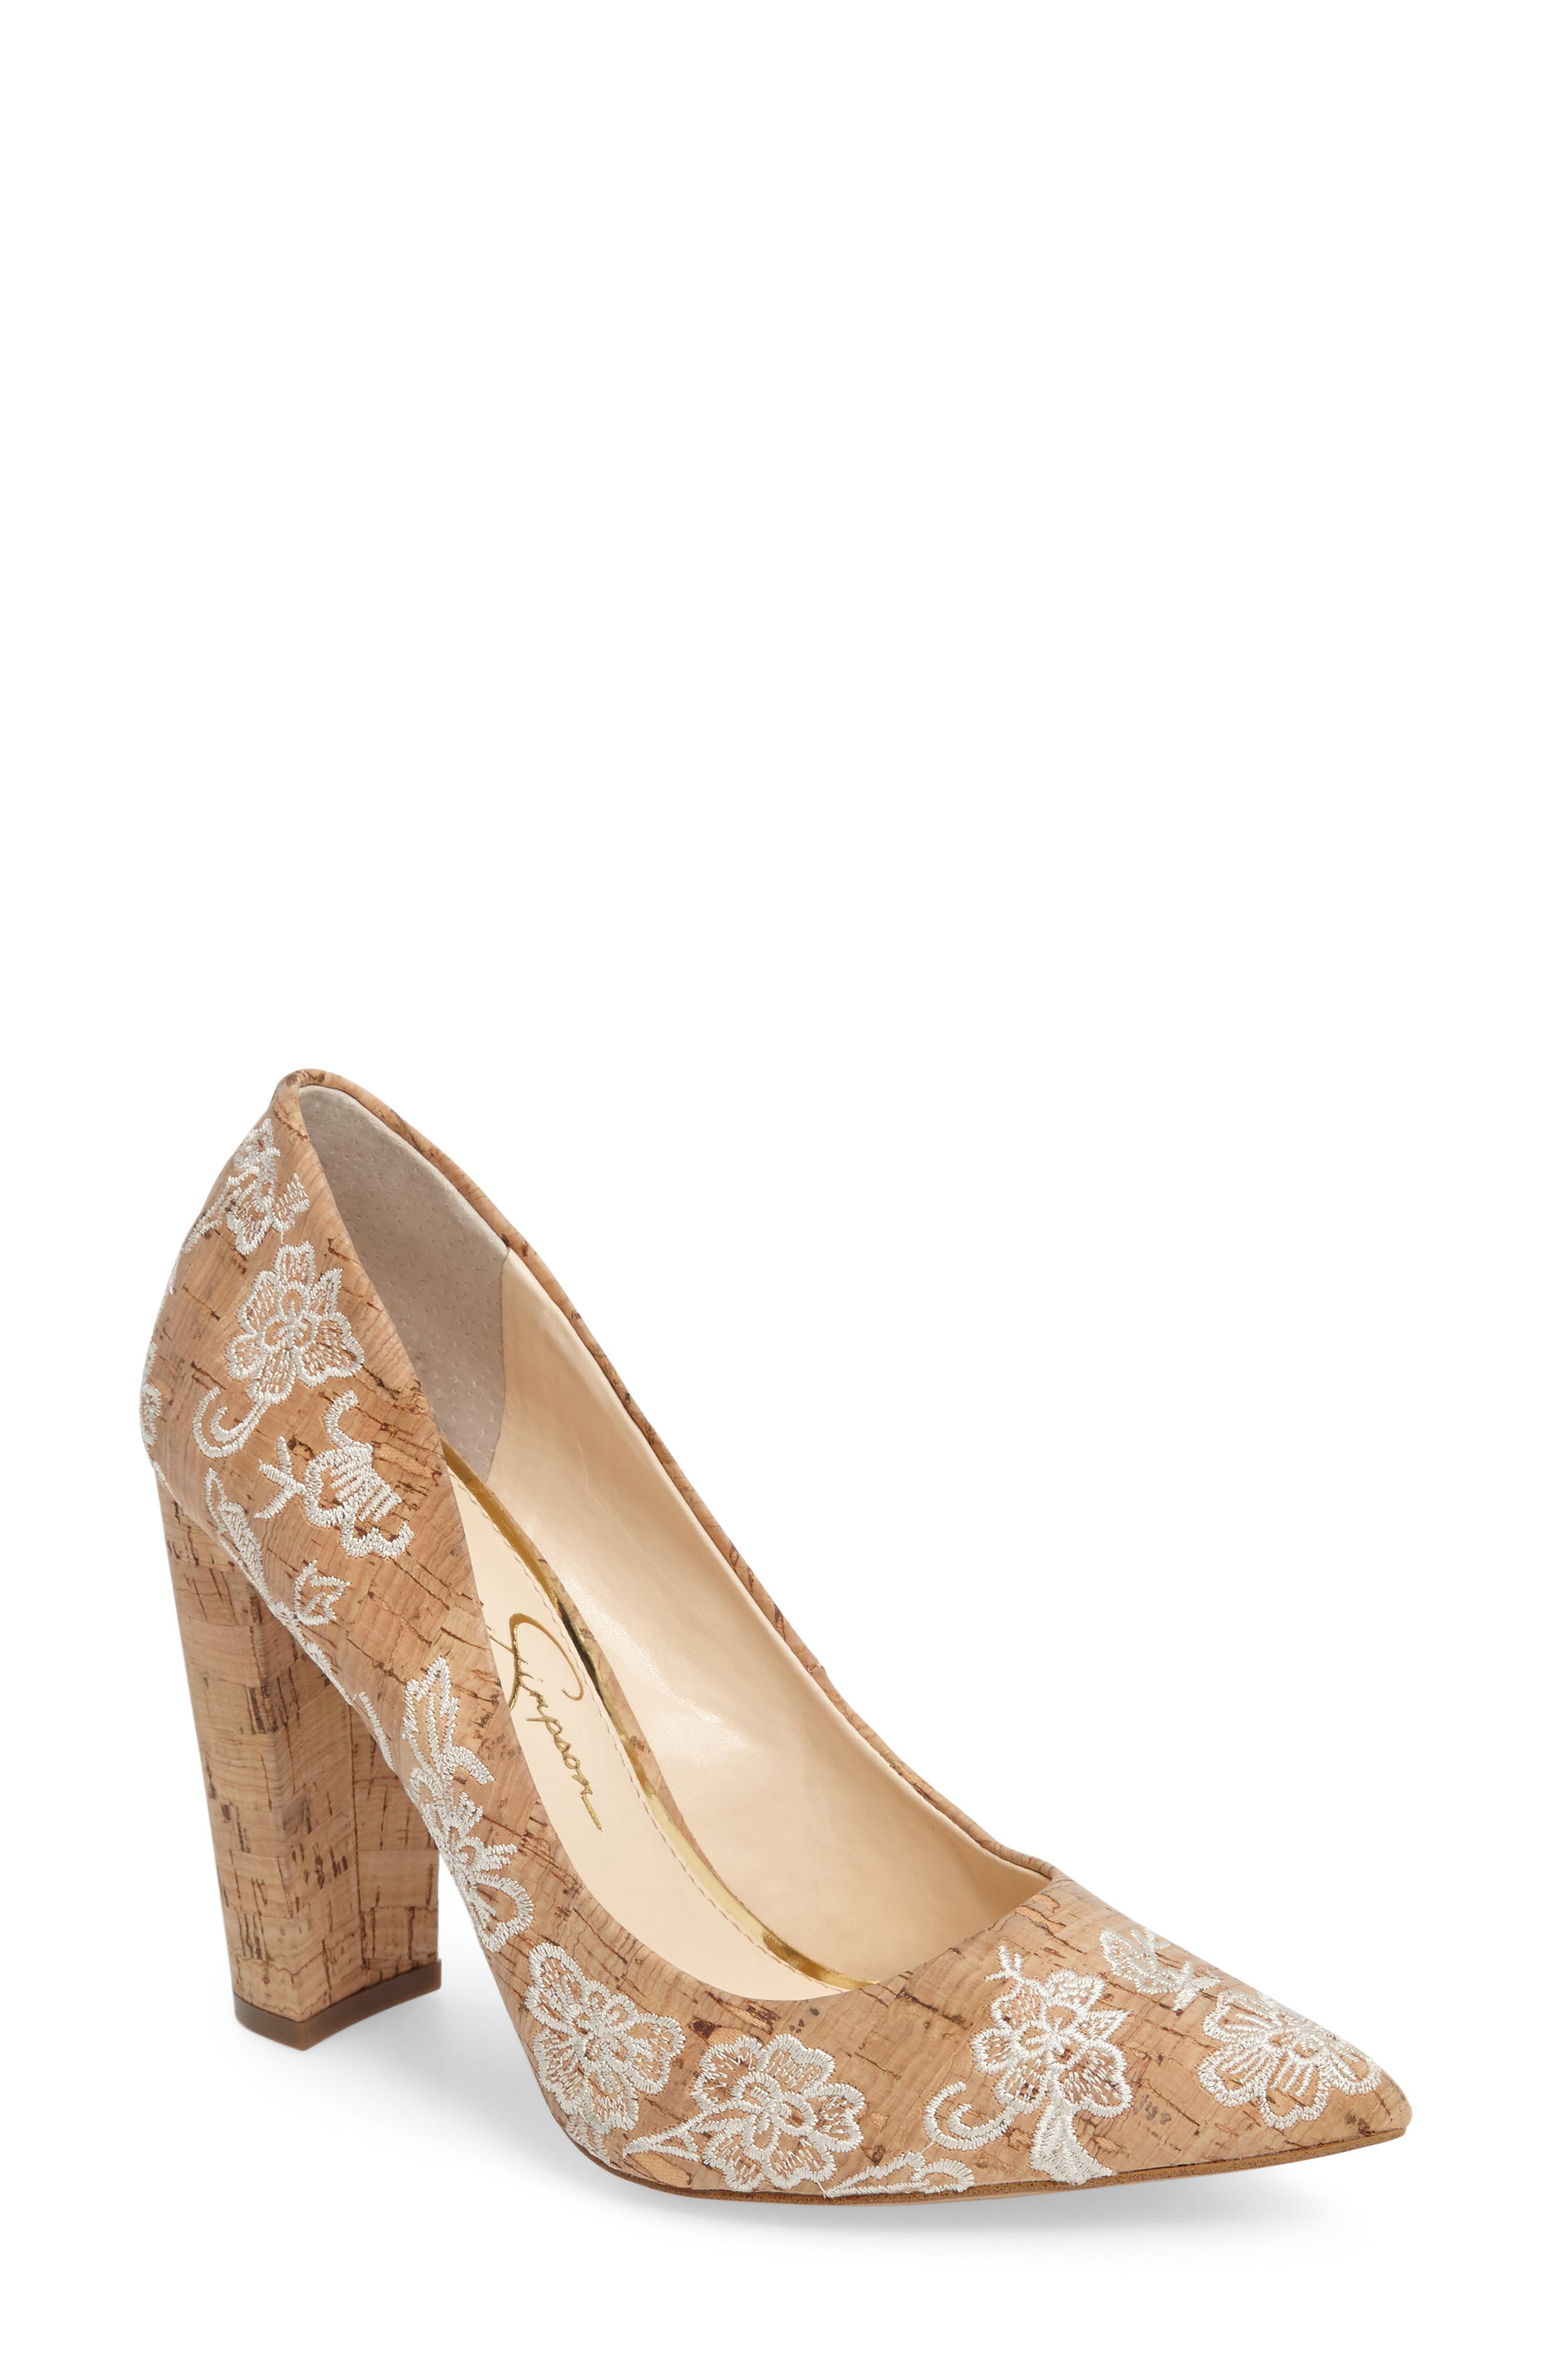 Main Image - Jessica Simpson Tanysha Pointy Toe Pump (Women)